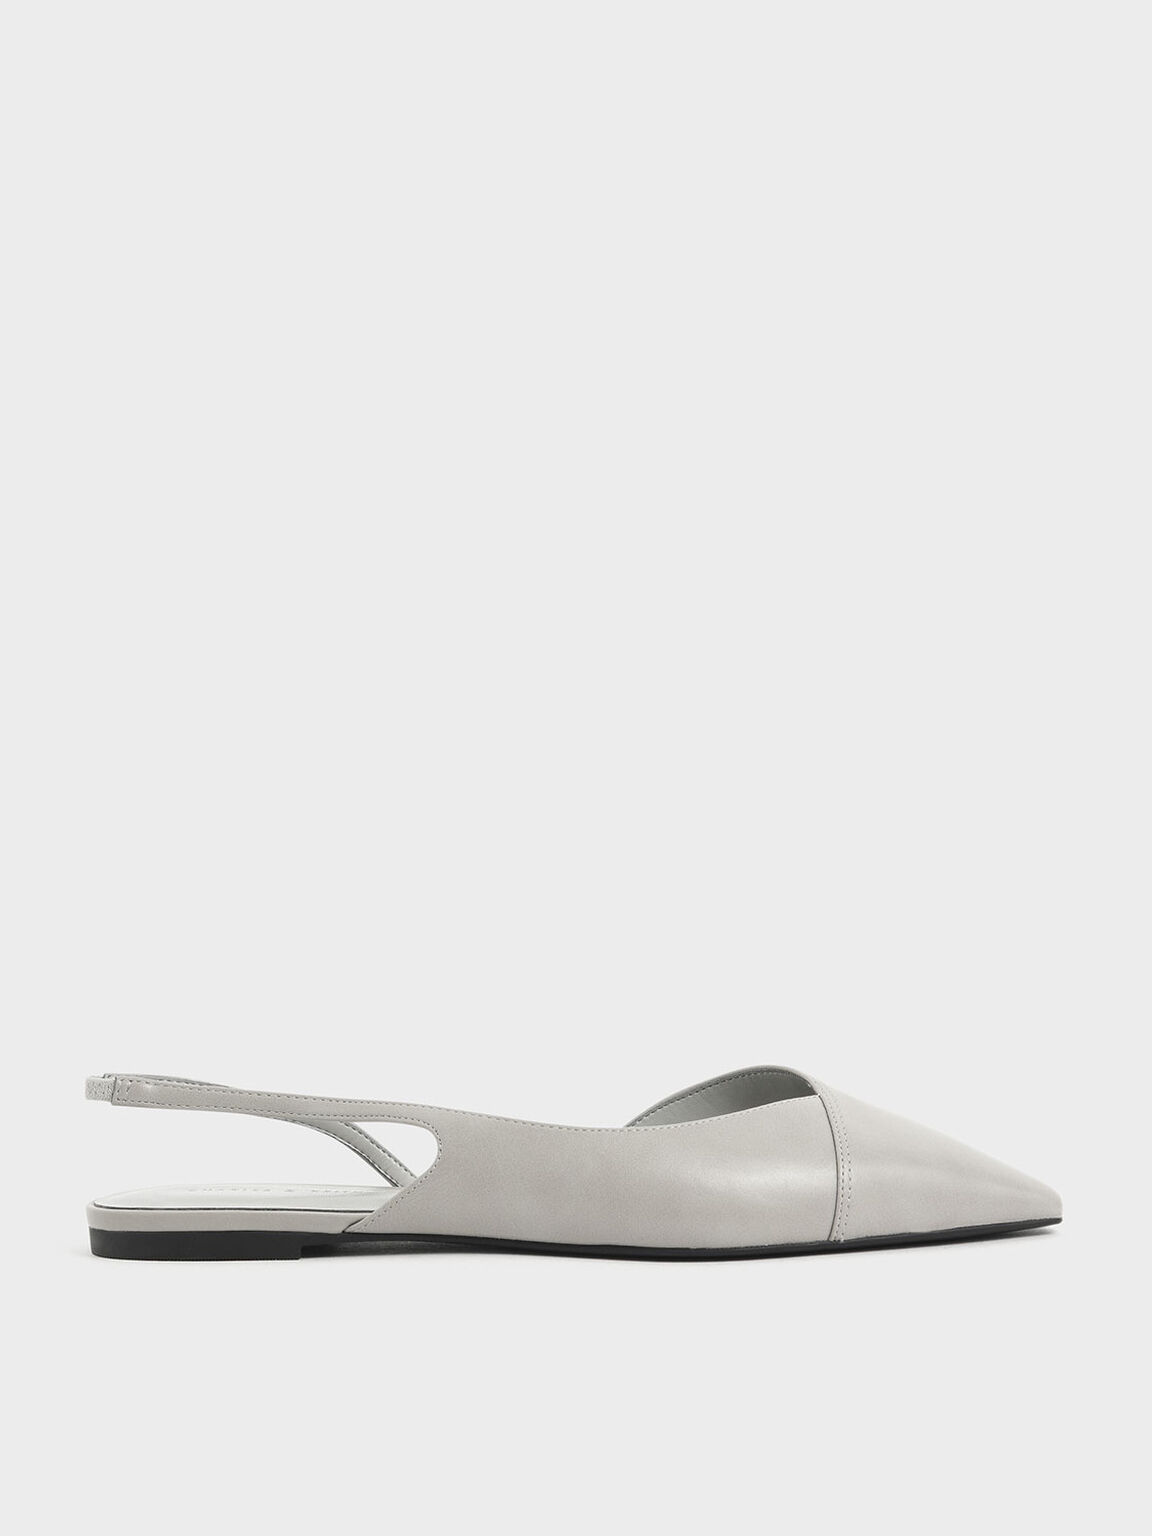 Asymmetric Slingback Flats, Light Blue, hi-res